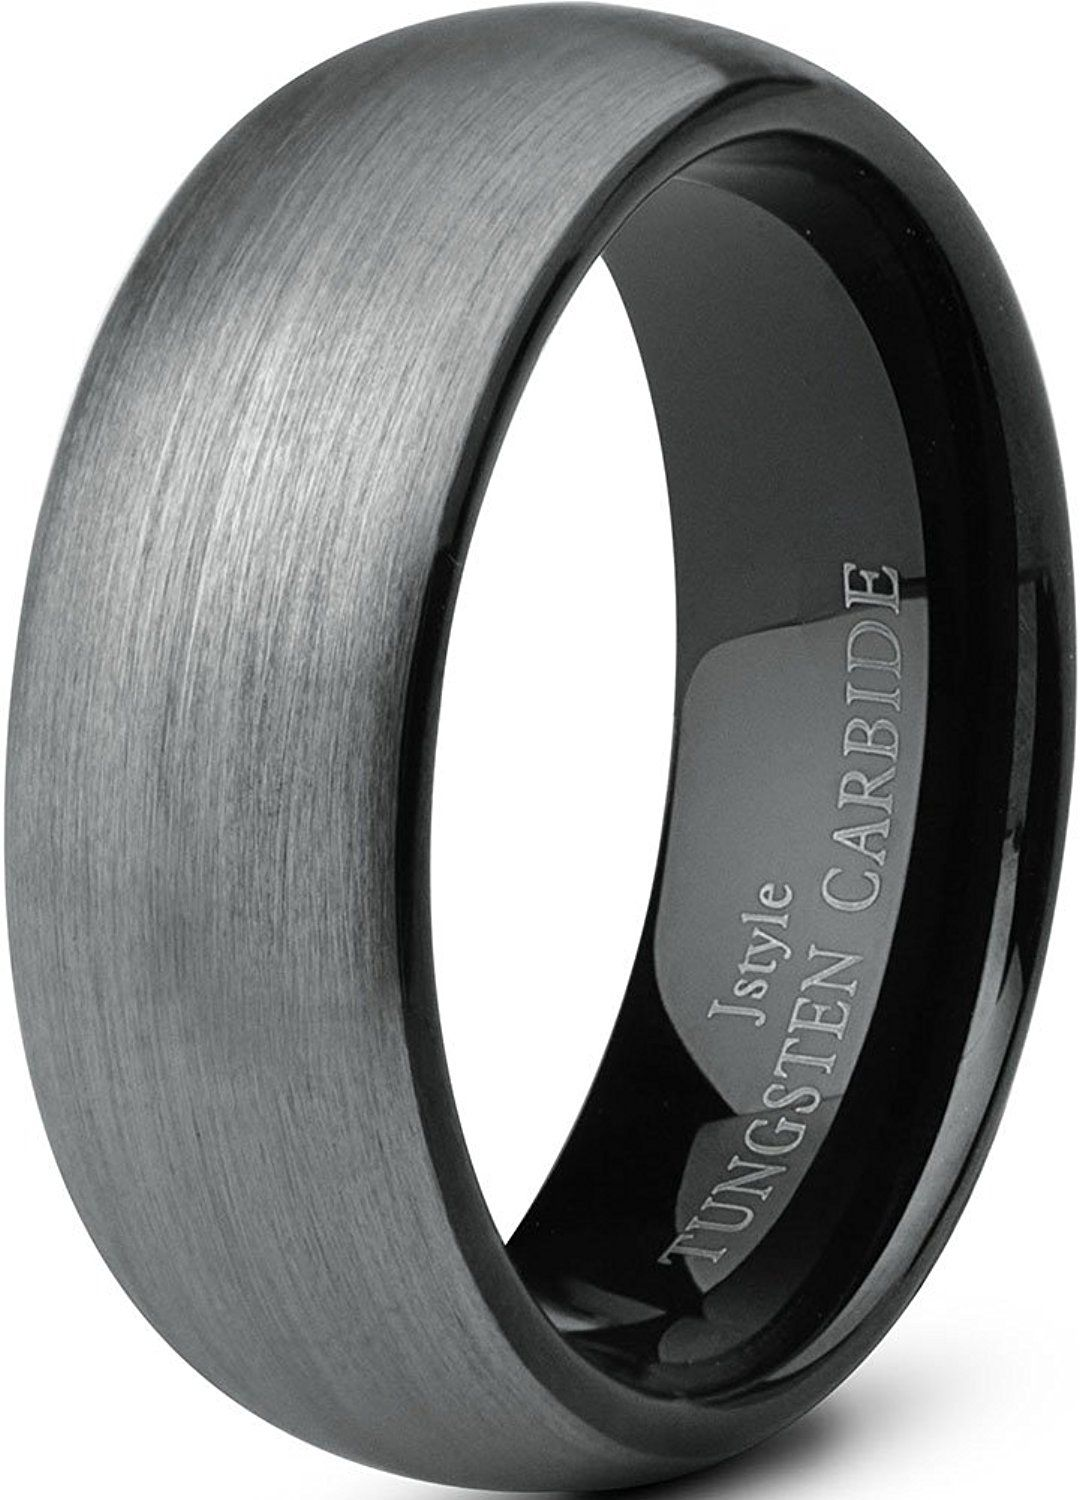 Jstyle Jewelry Tungsten Rings For Men Wedding Band Black Ring 8mm